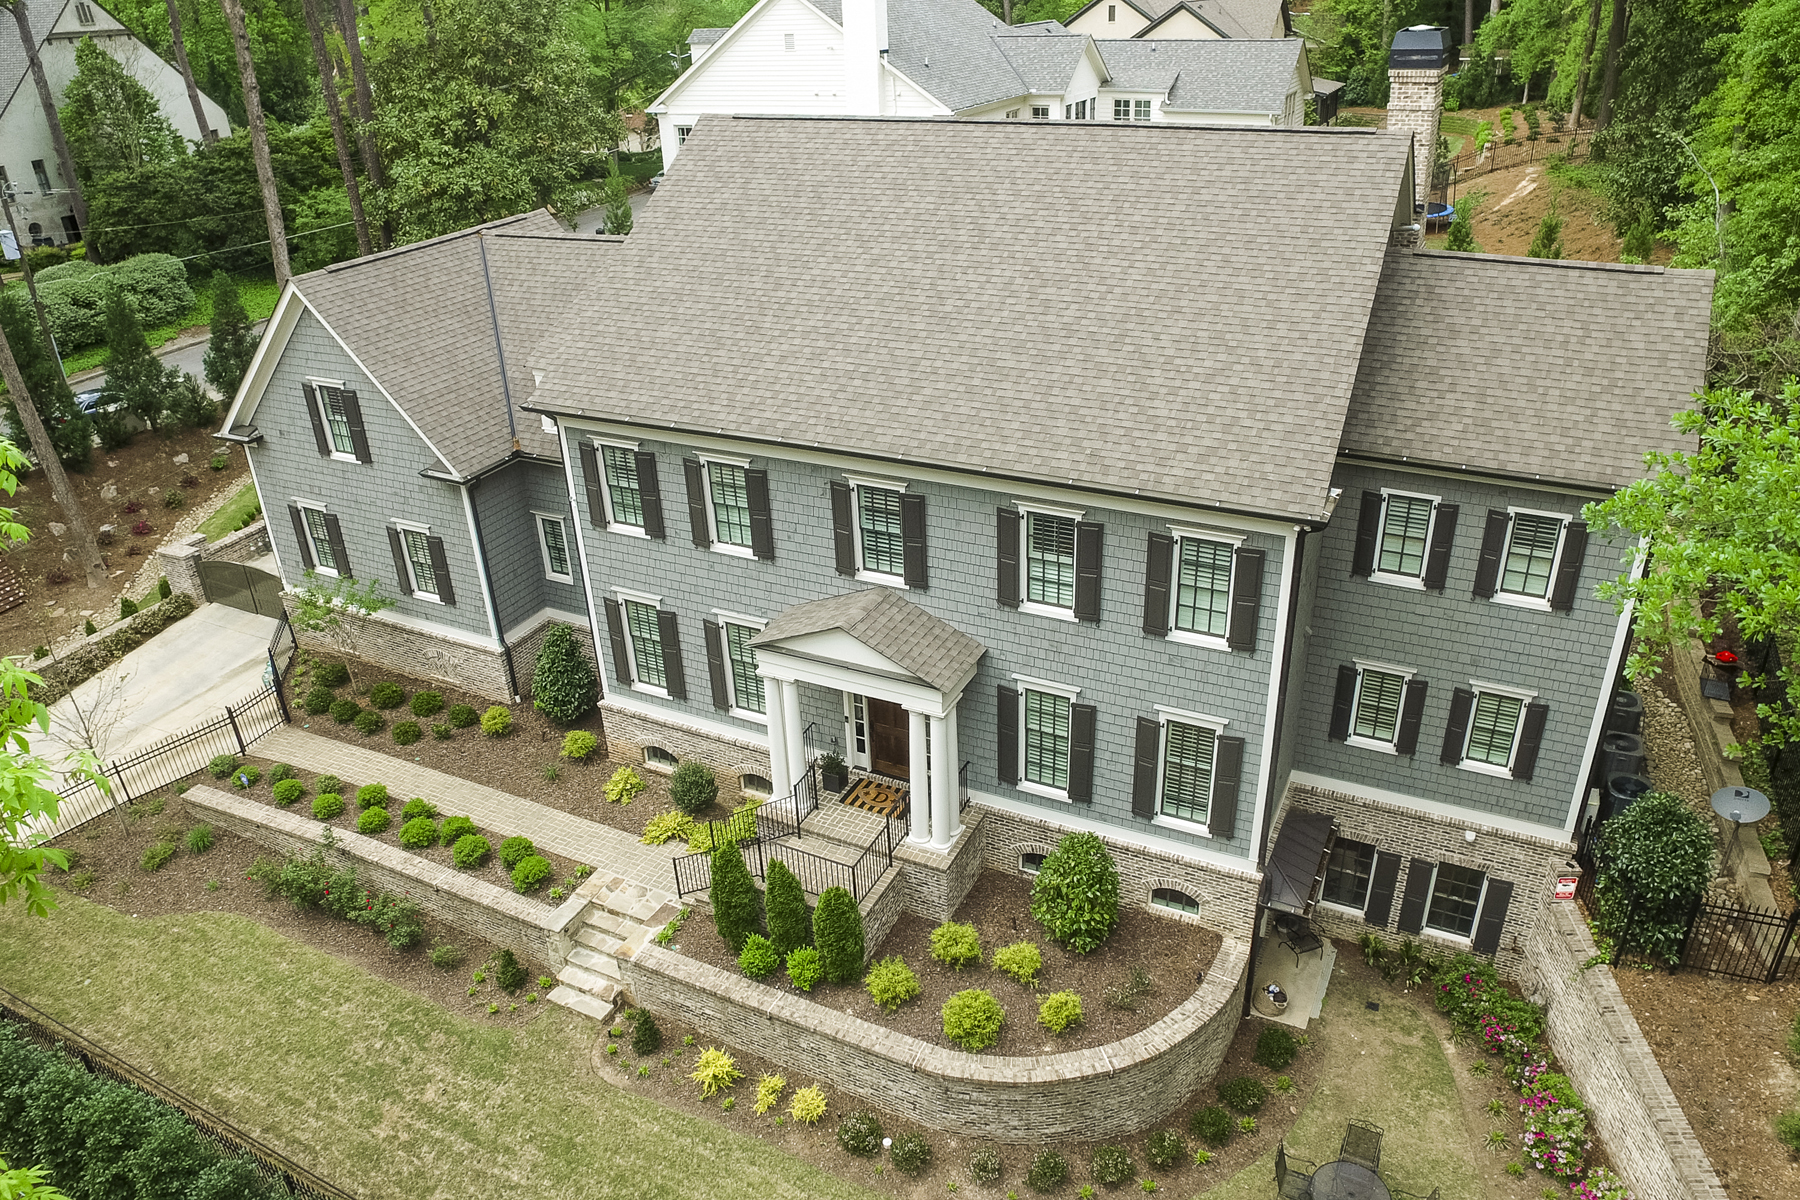 Single Family Home for Sale at Quality Recent Construction Home On Large Corner Lot 985 Dawn View Lane NW Buckhead, Atlanta, Georgia, 30327 United States